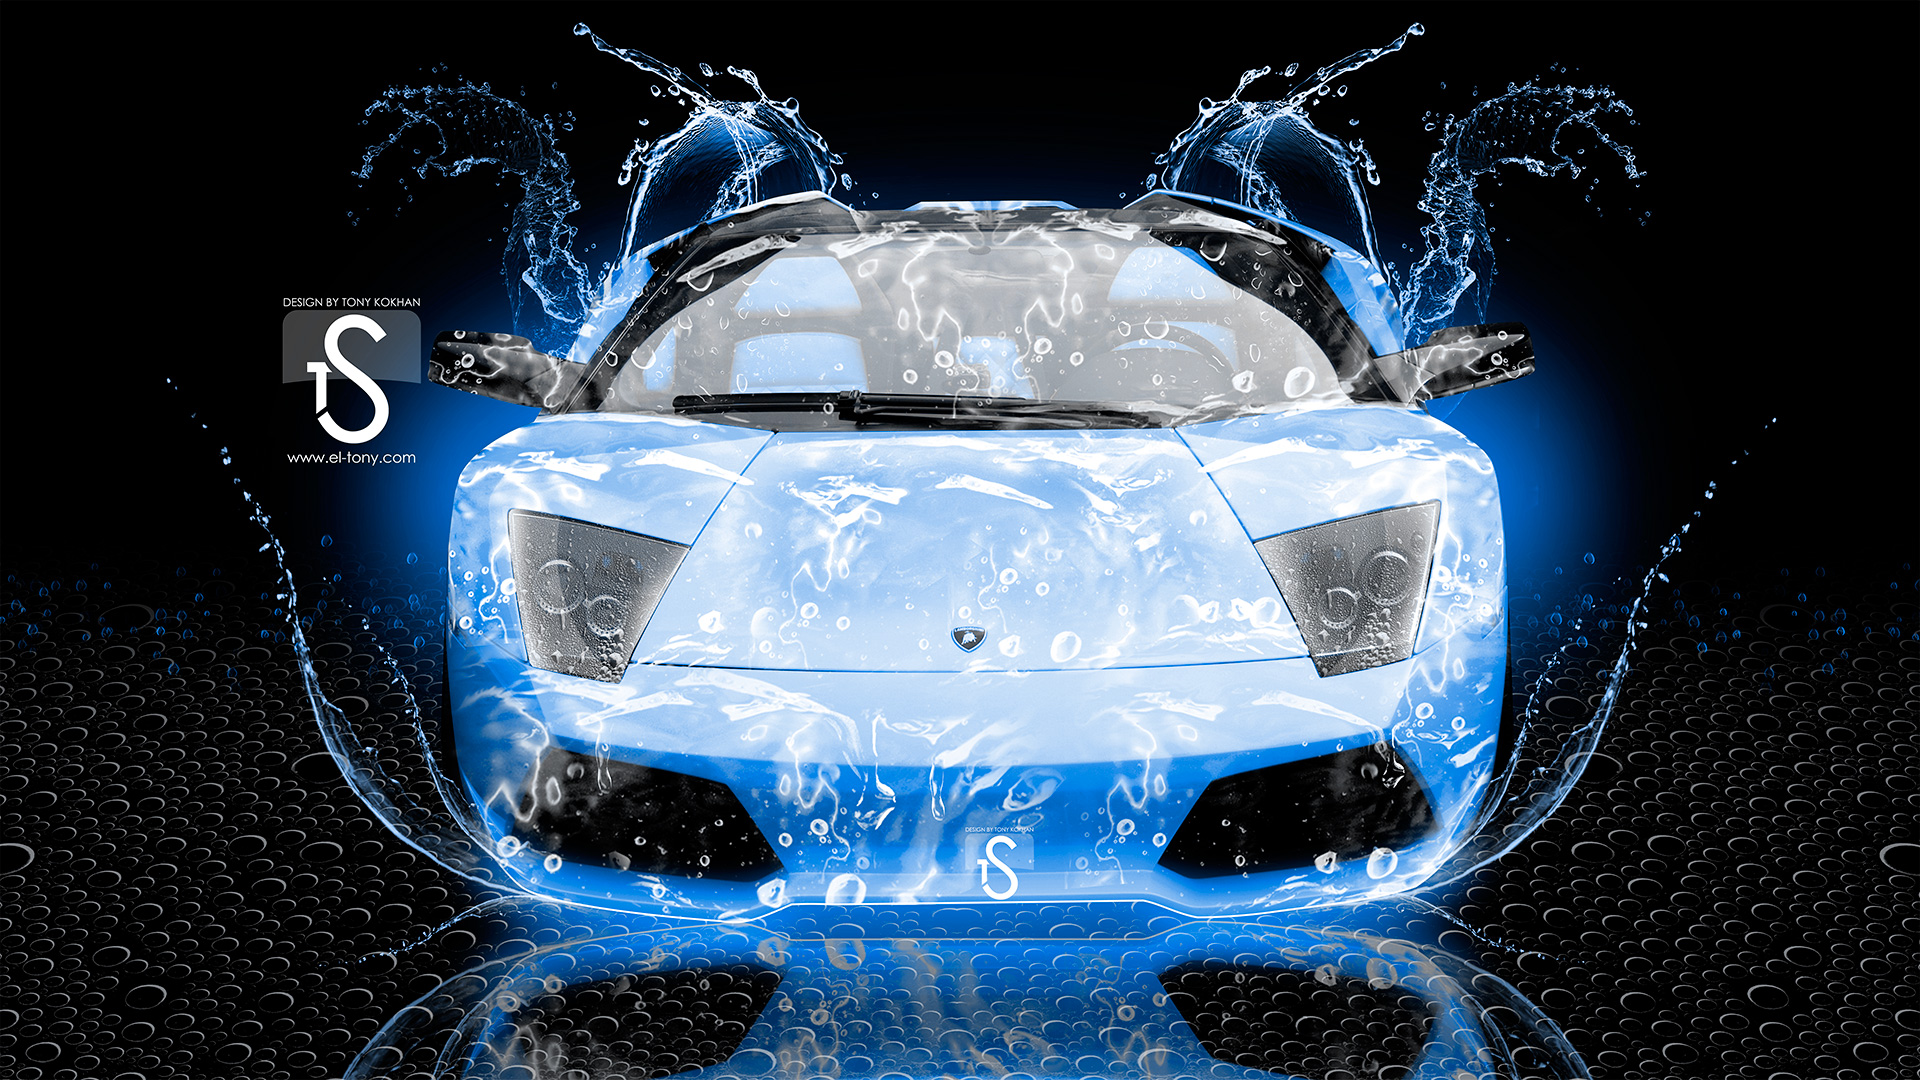 lamborghini murcielago water car 2013 | el tony